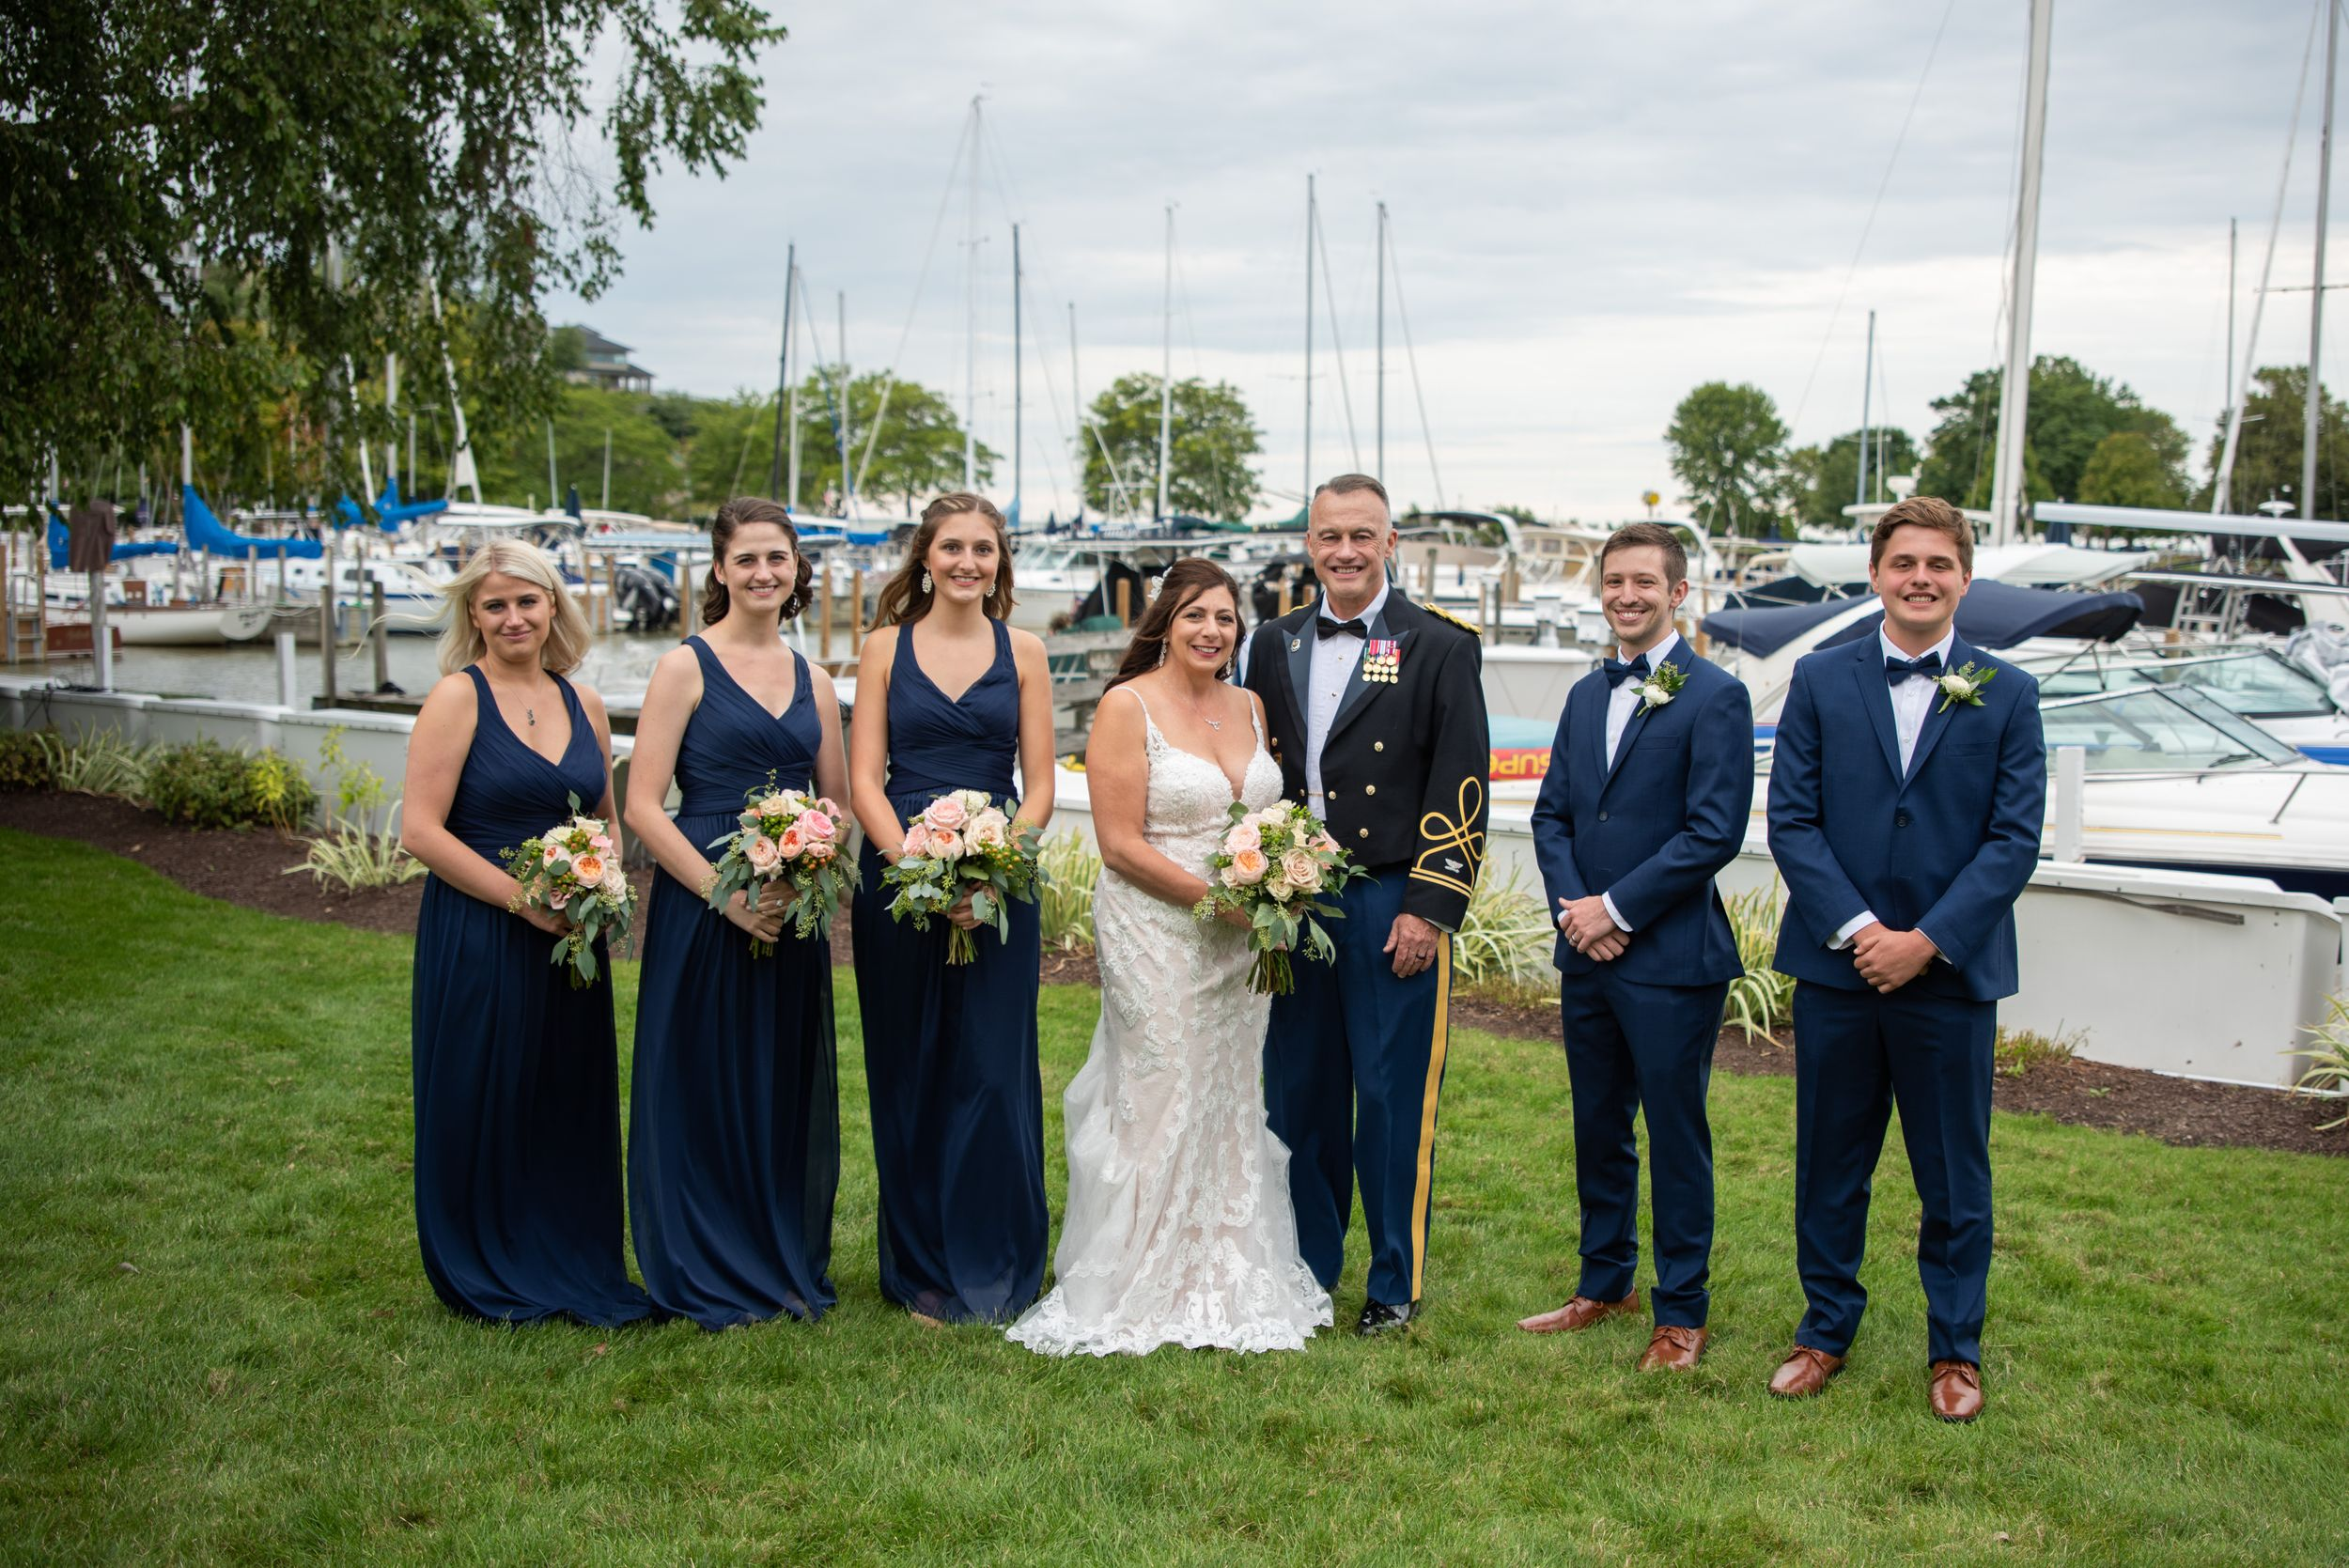 bridal party at outdoor wedding, Cleveland Yachting Club, Ohio